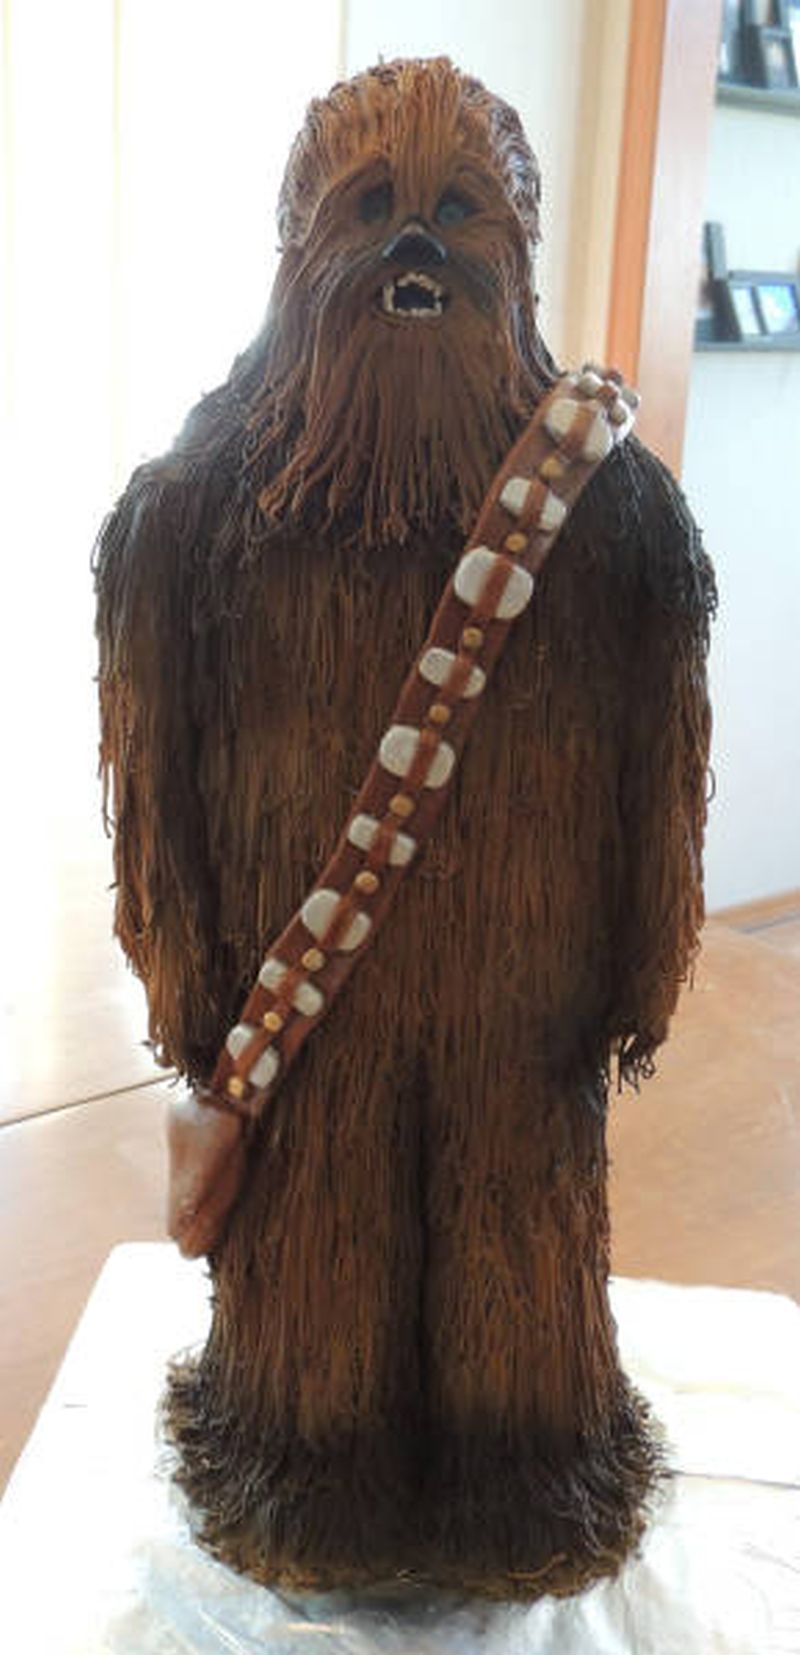 chewbacca cake, yes you read that right